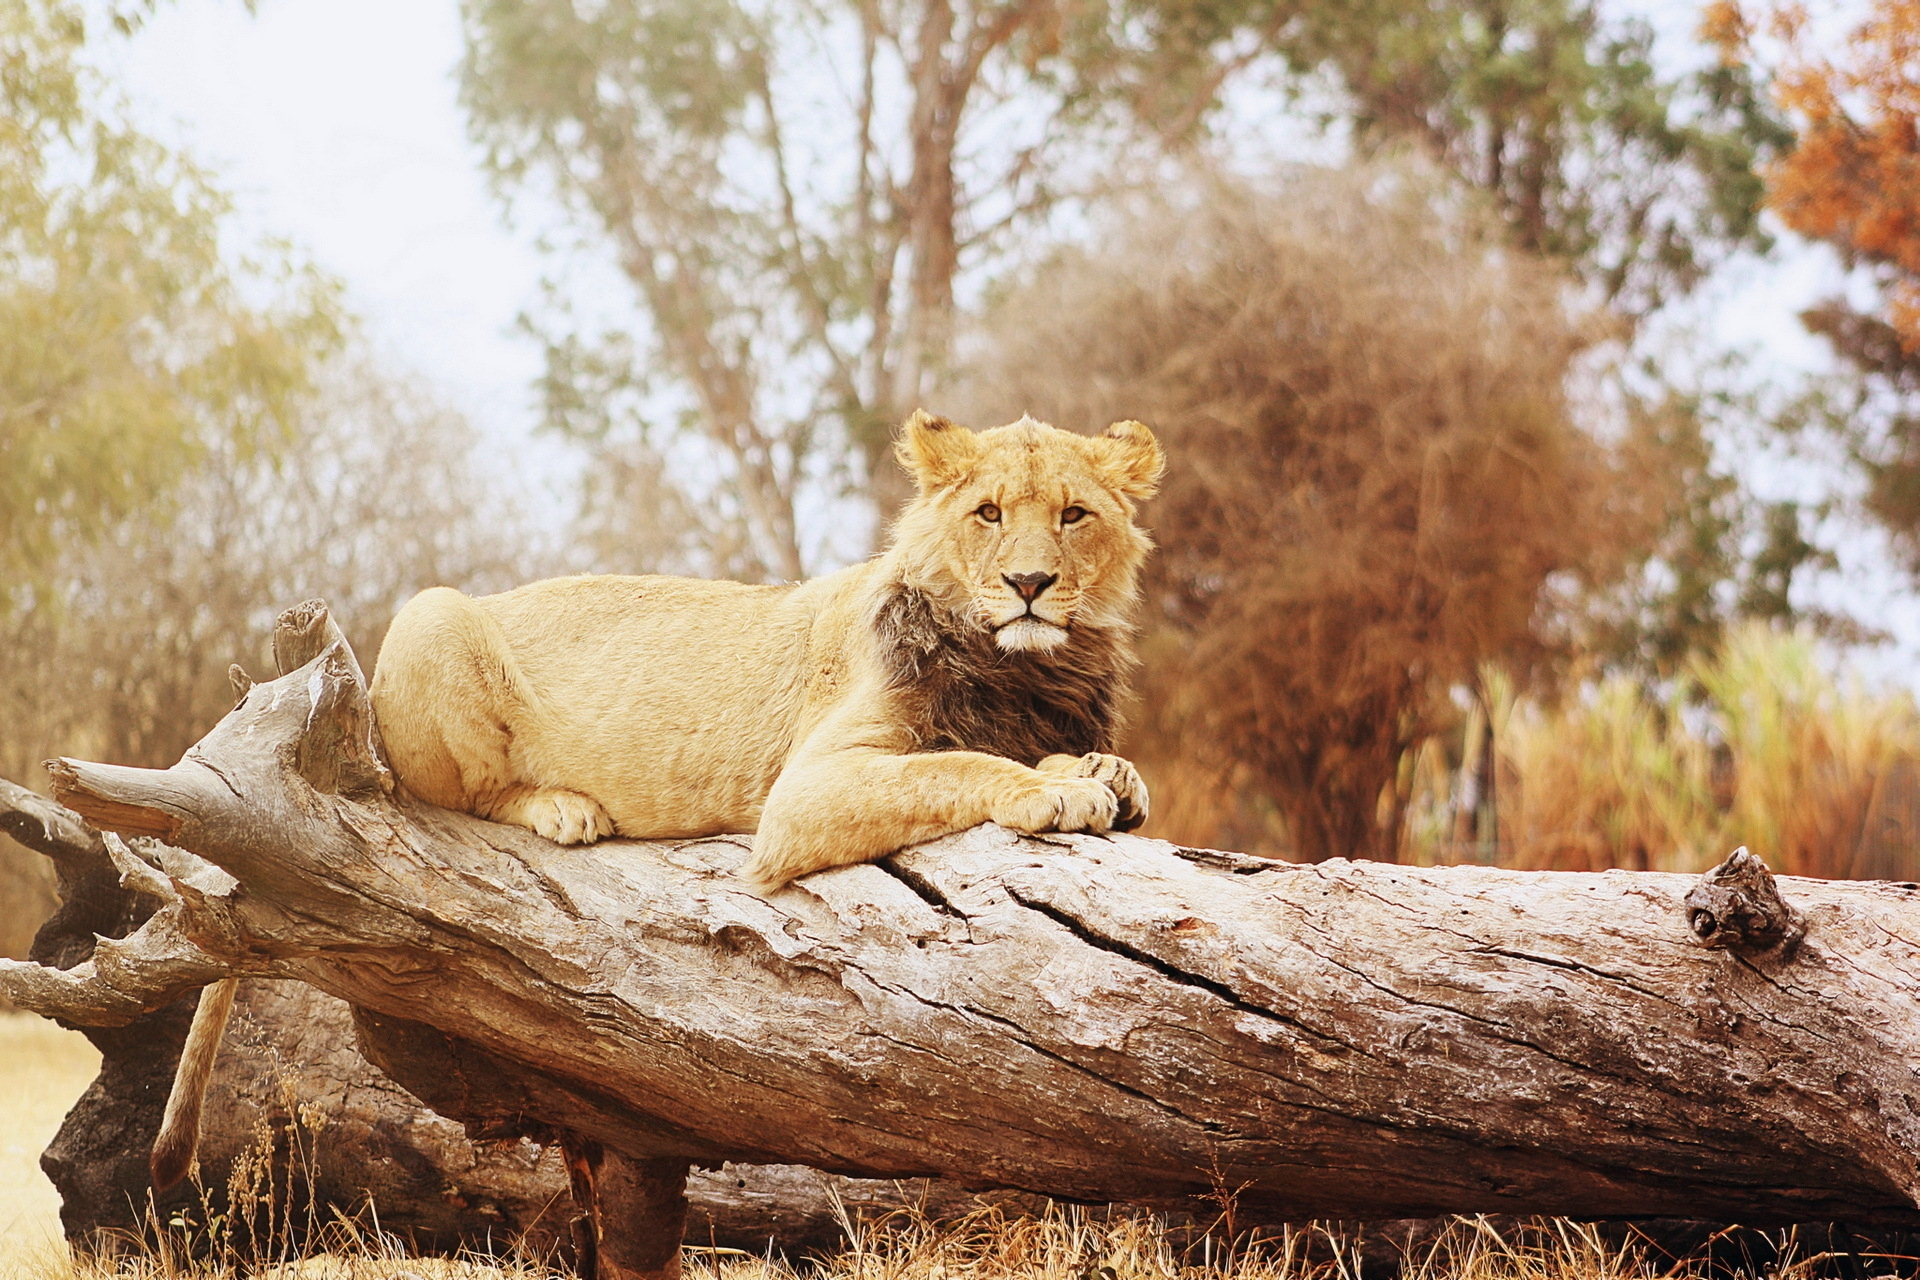 114144 download wallpaper Animals, Lion, Log, To Lie Down, Lie, Big Cat, Predator screensavers and pictures for free